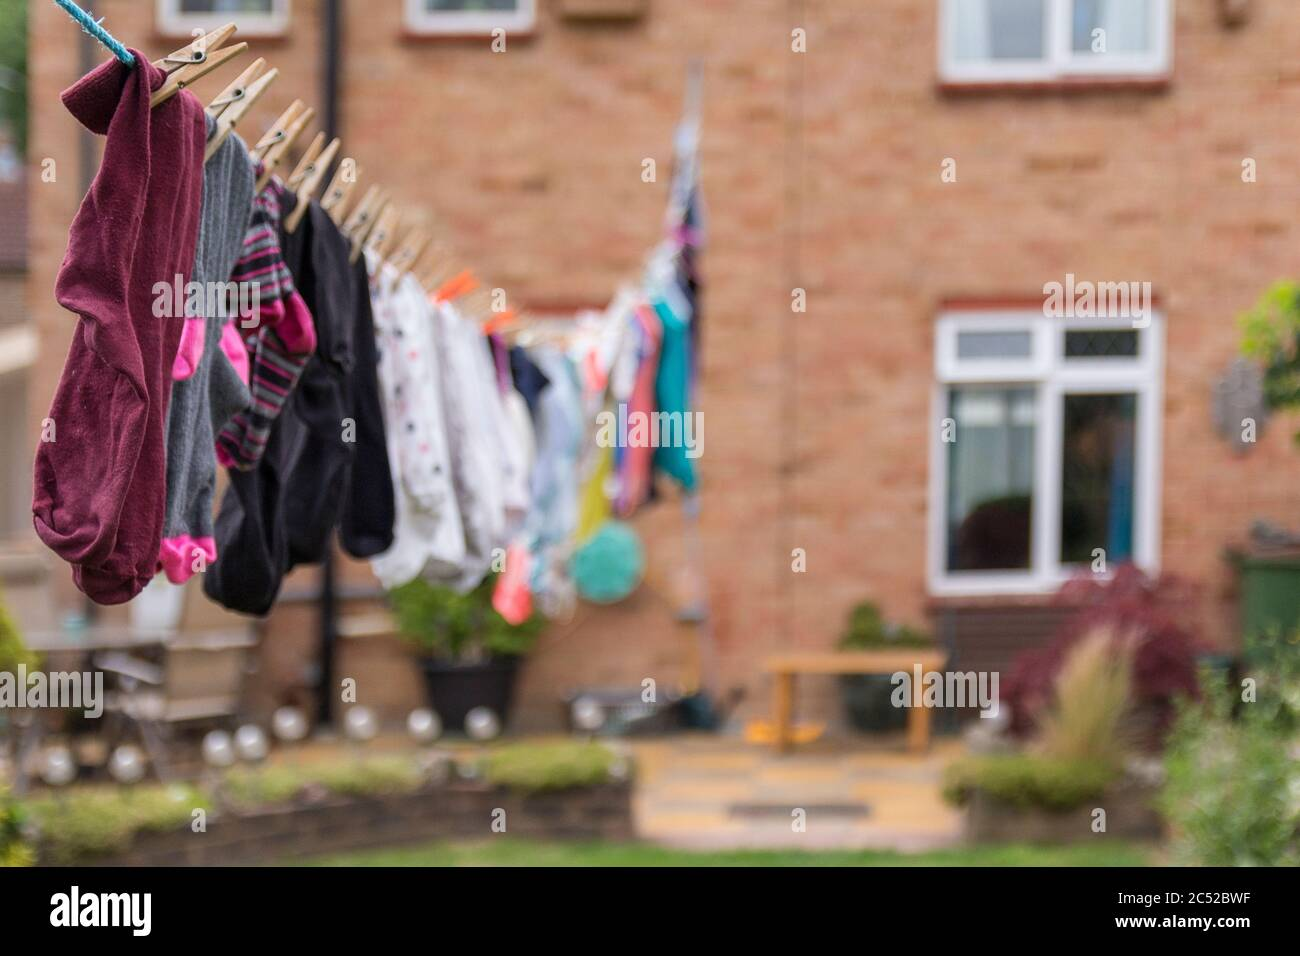 Washing hanging on long line drying in the gusty windy weather. Full length of my garden taken up with washing drying and blowing around end to end. Stock Photo